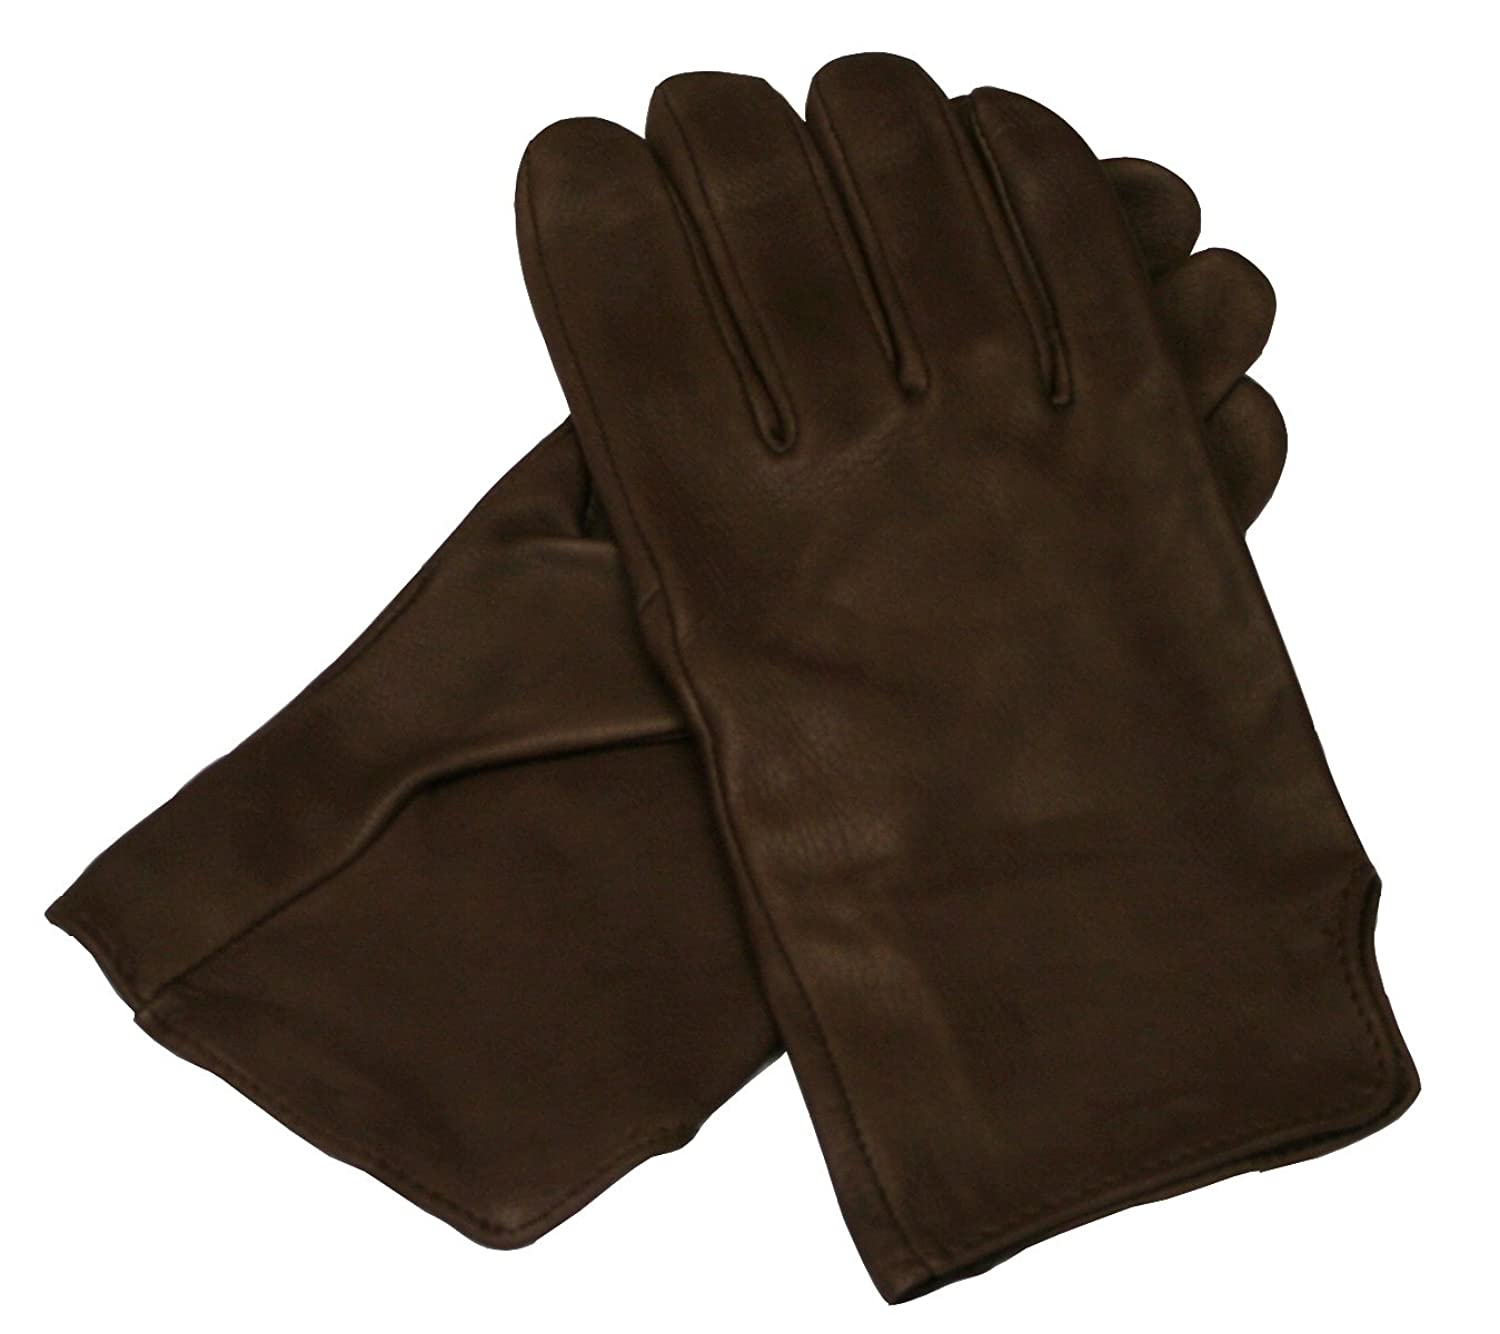 Edwardian Men's Accessories Victorian Leather Brown or Black Dress Gloves $52.95 AT vintagedancer.com